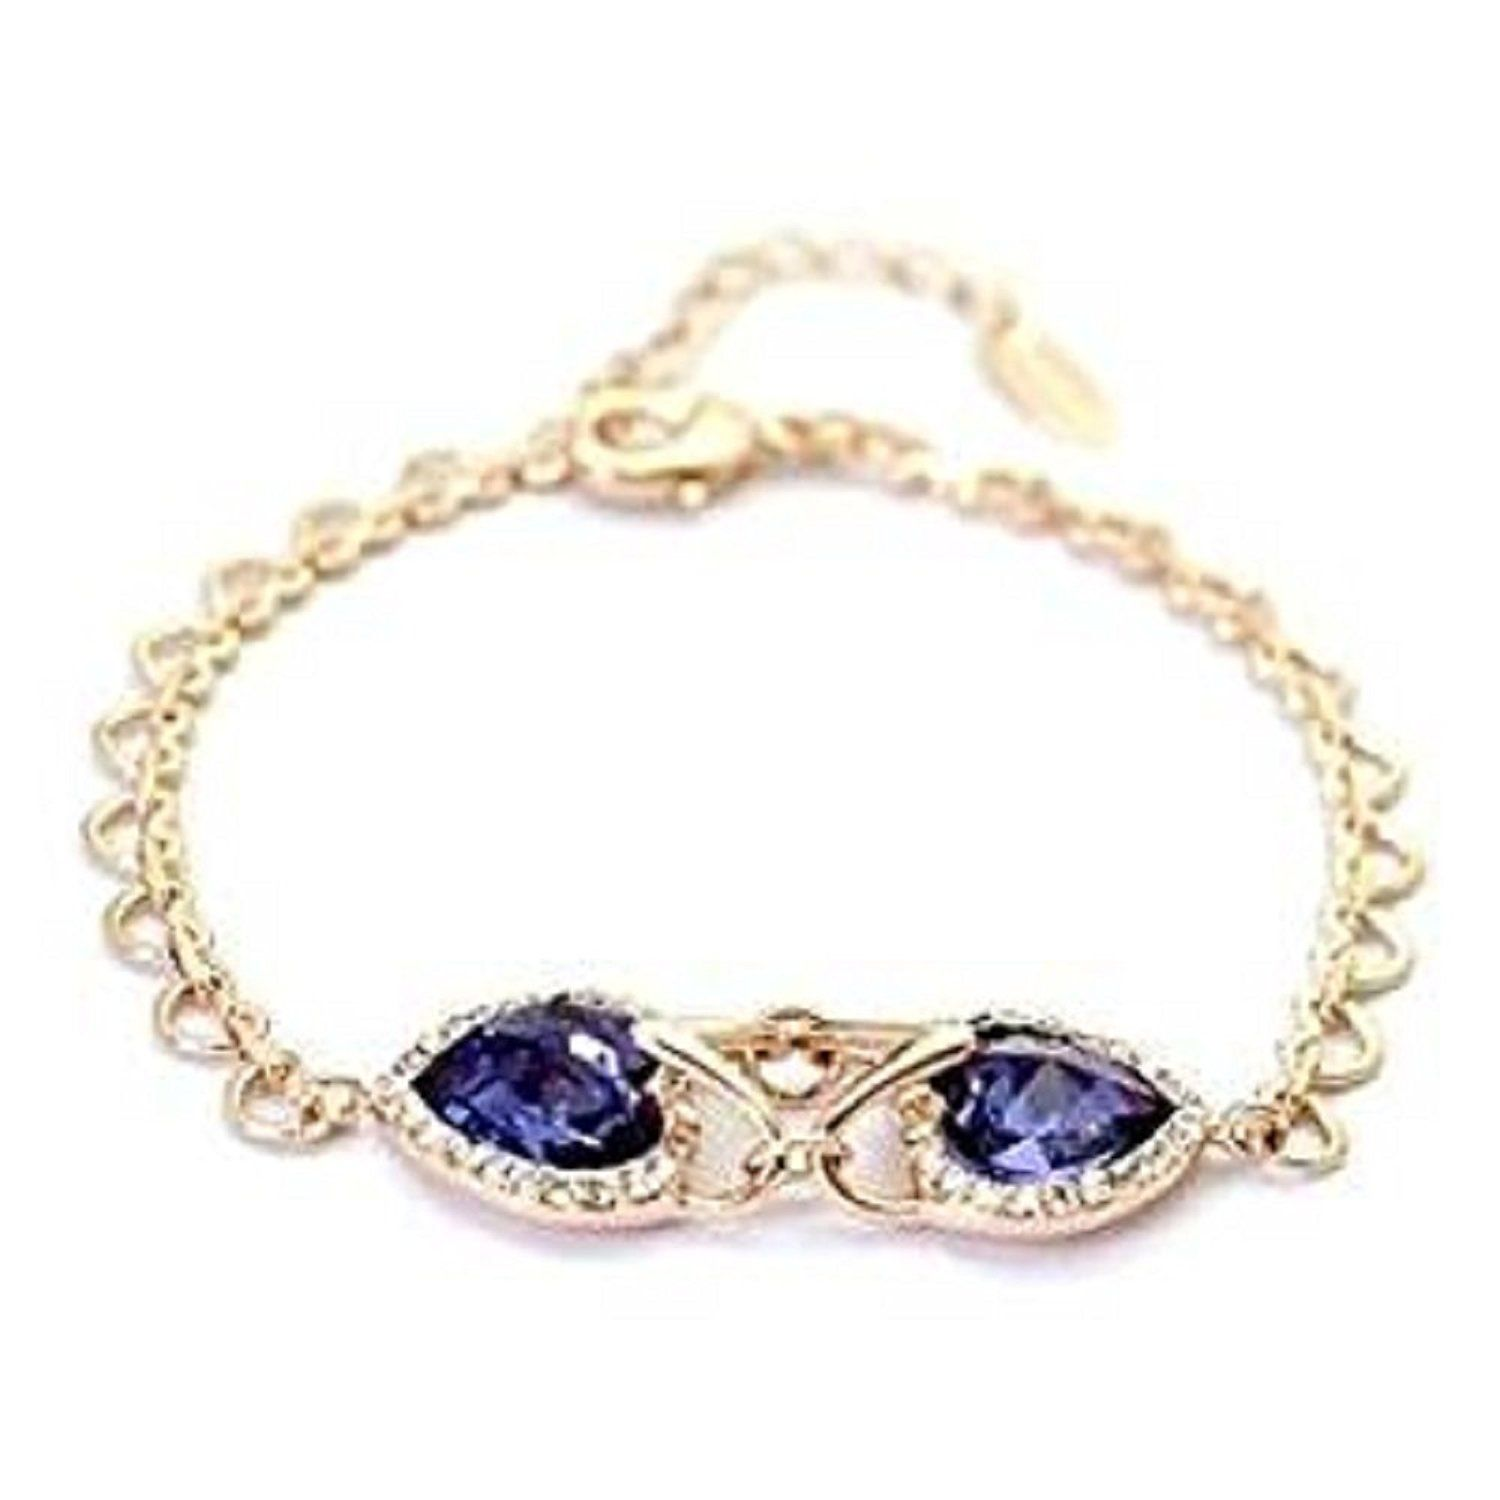 Bracelet with heart design goldplated with swarovski elements